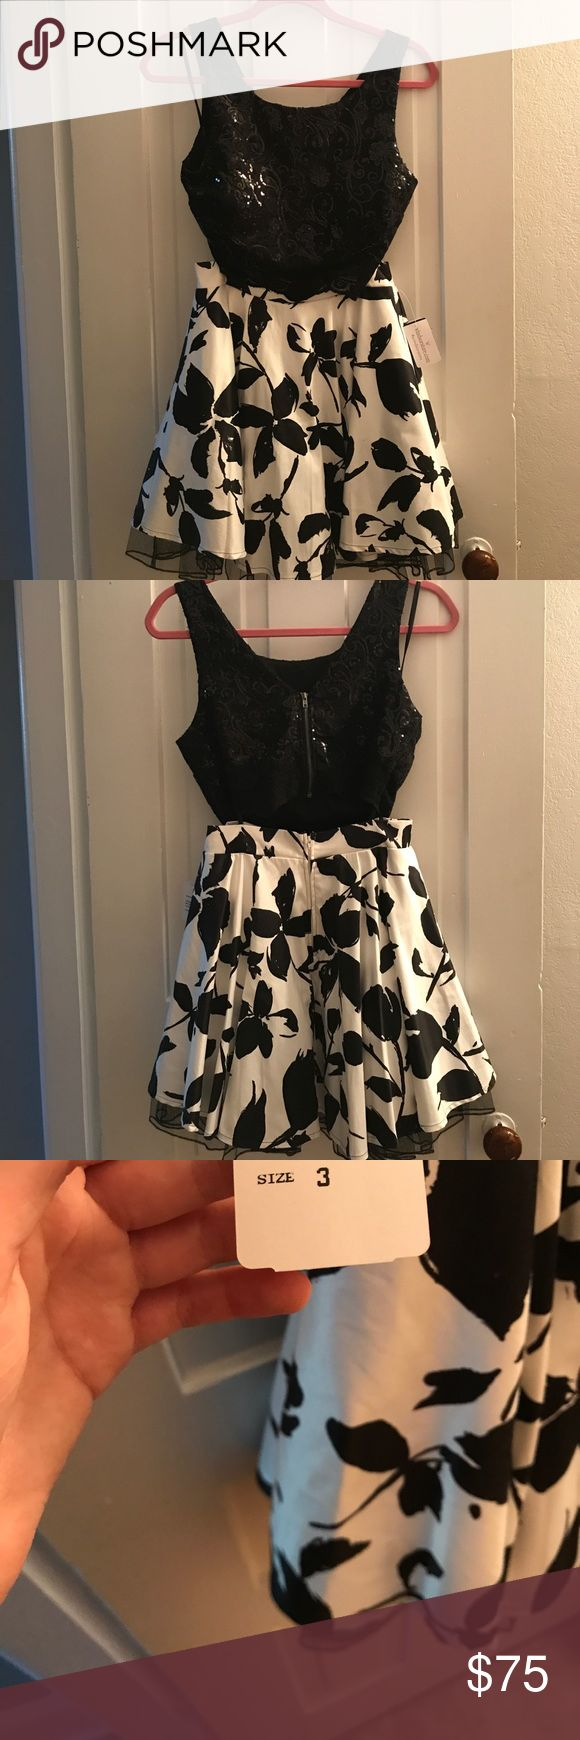 Two piece dress black sparkly cropped top with white skirt with black flowers. never worn WINDSOR Dresses Mini